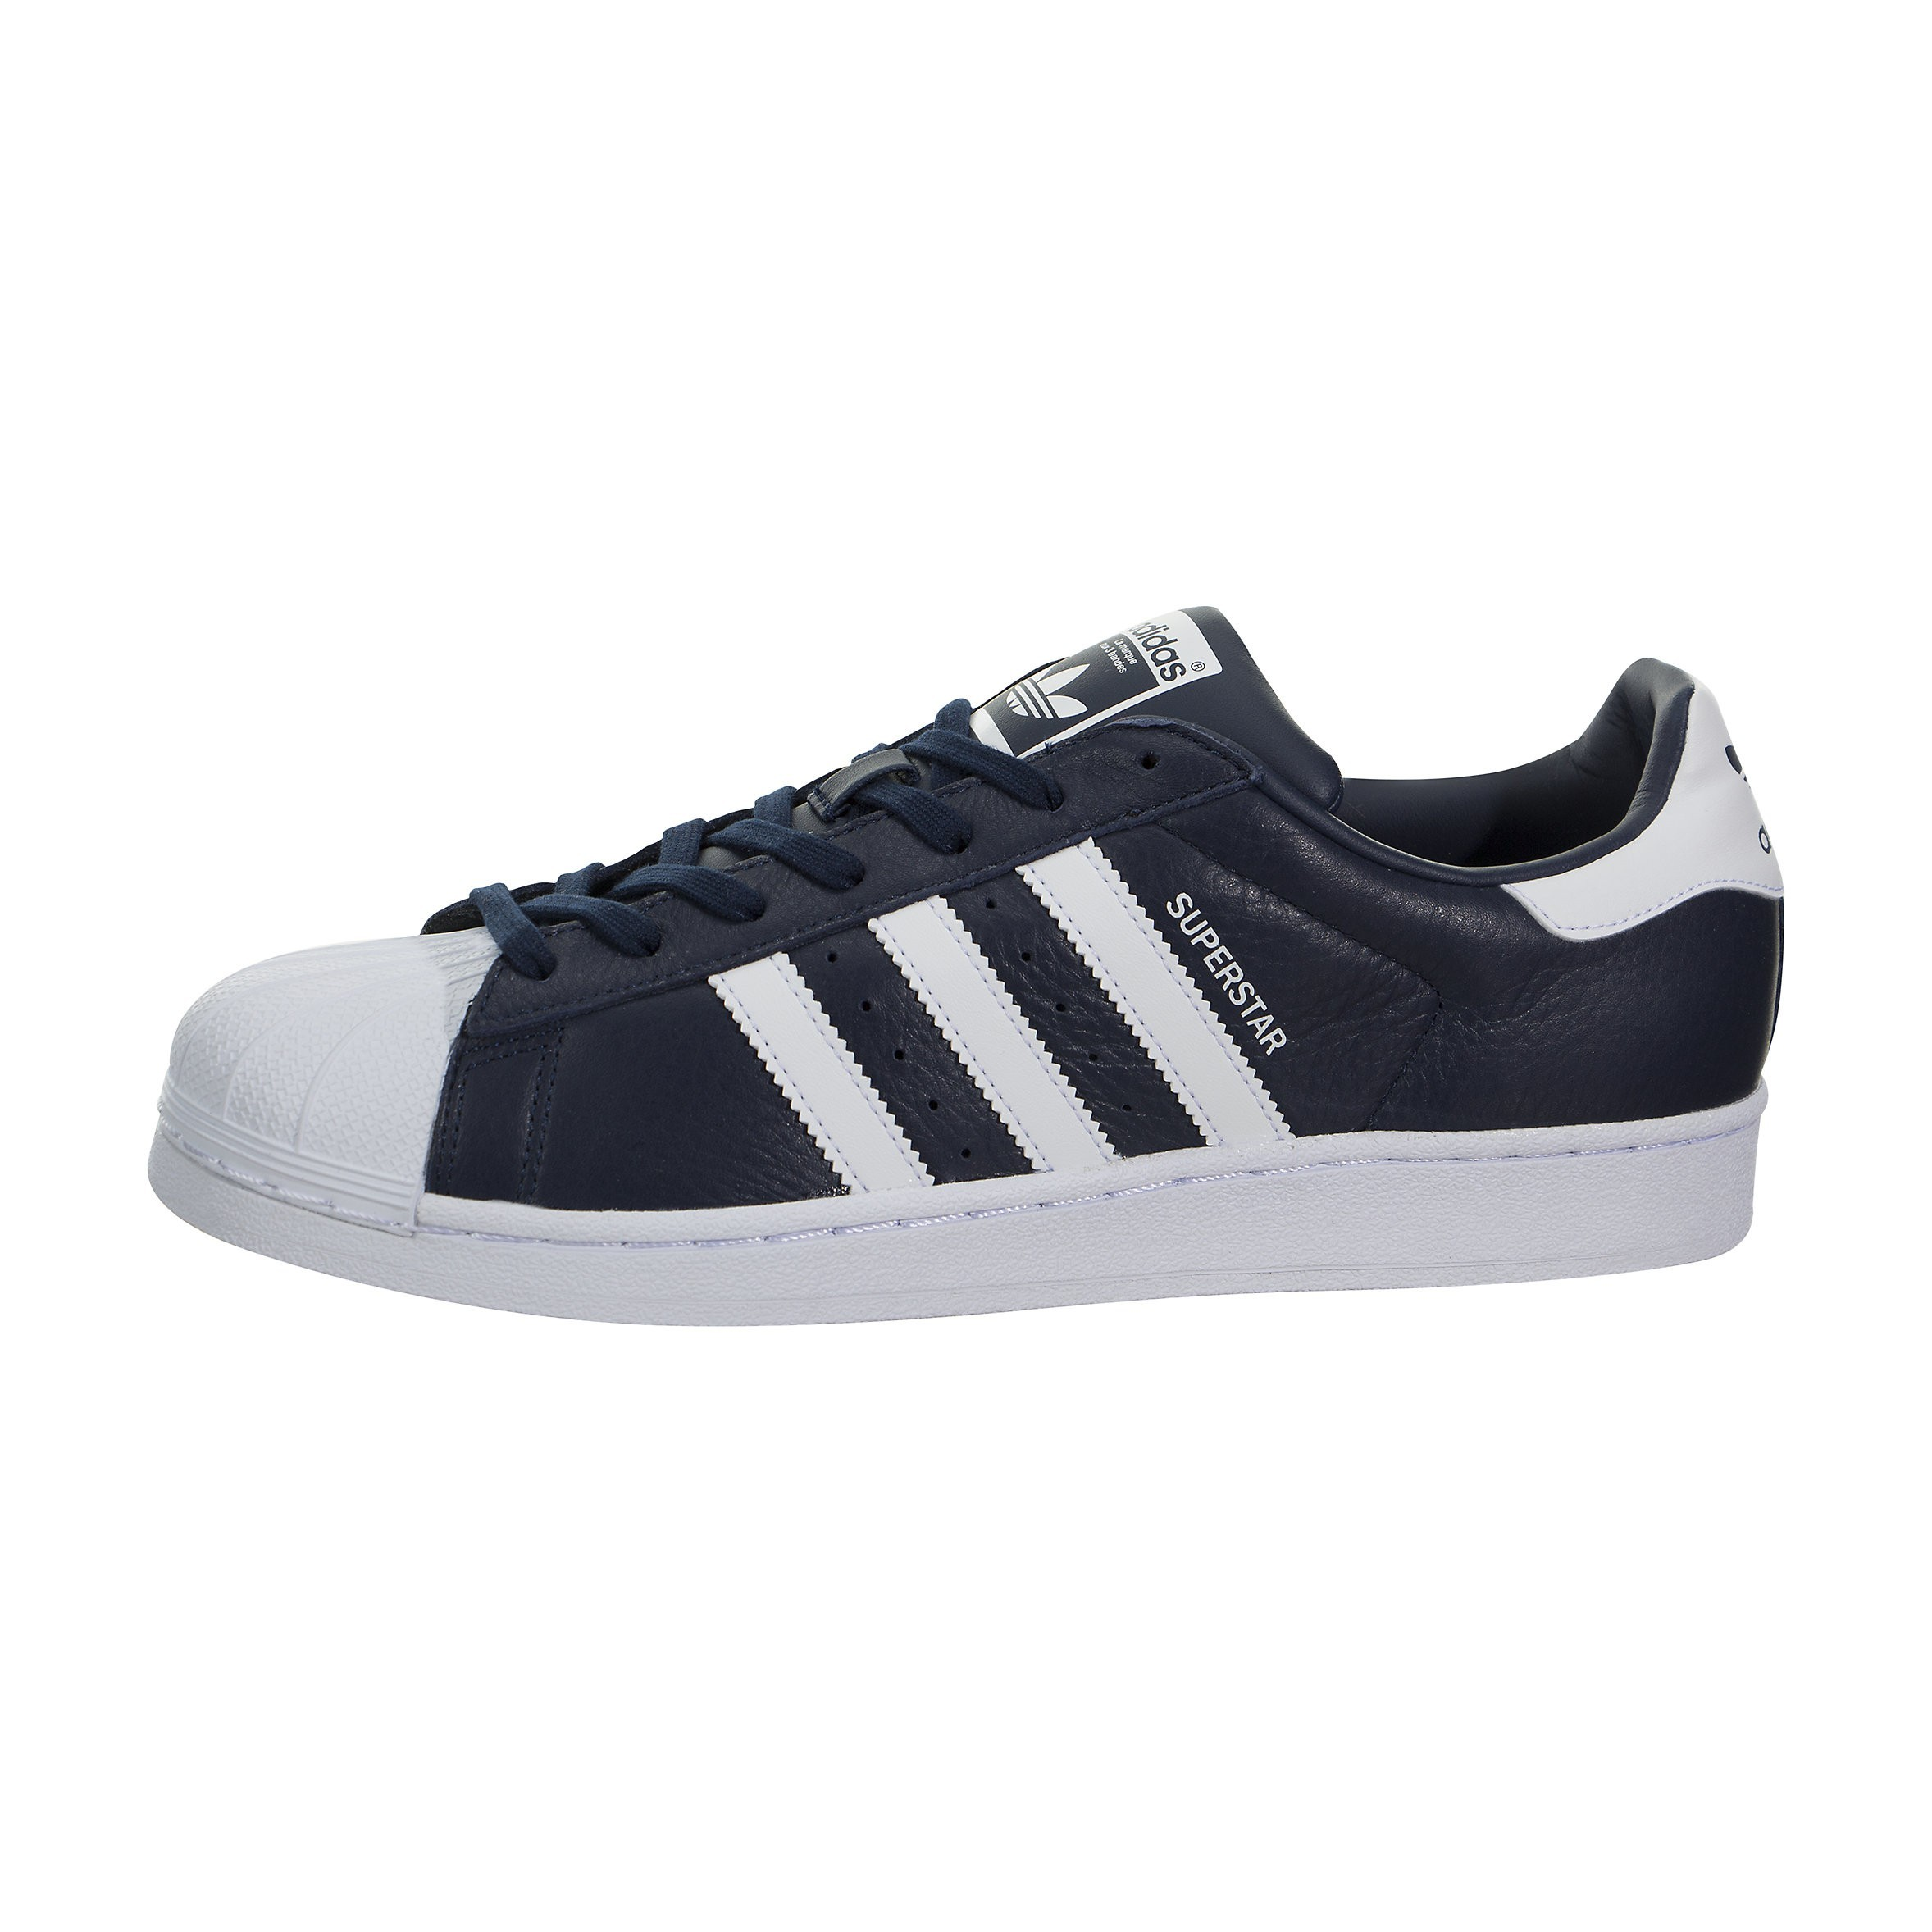 adidas Originals Superstar Hombre Azules Blancas Bb2239